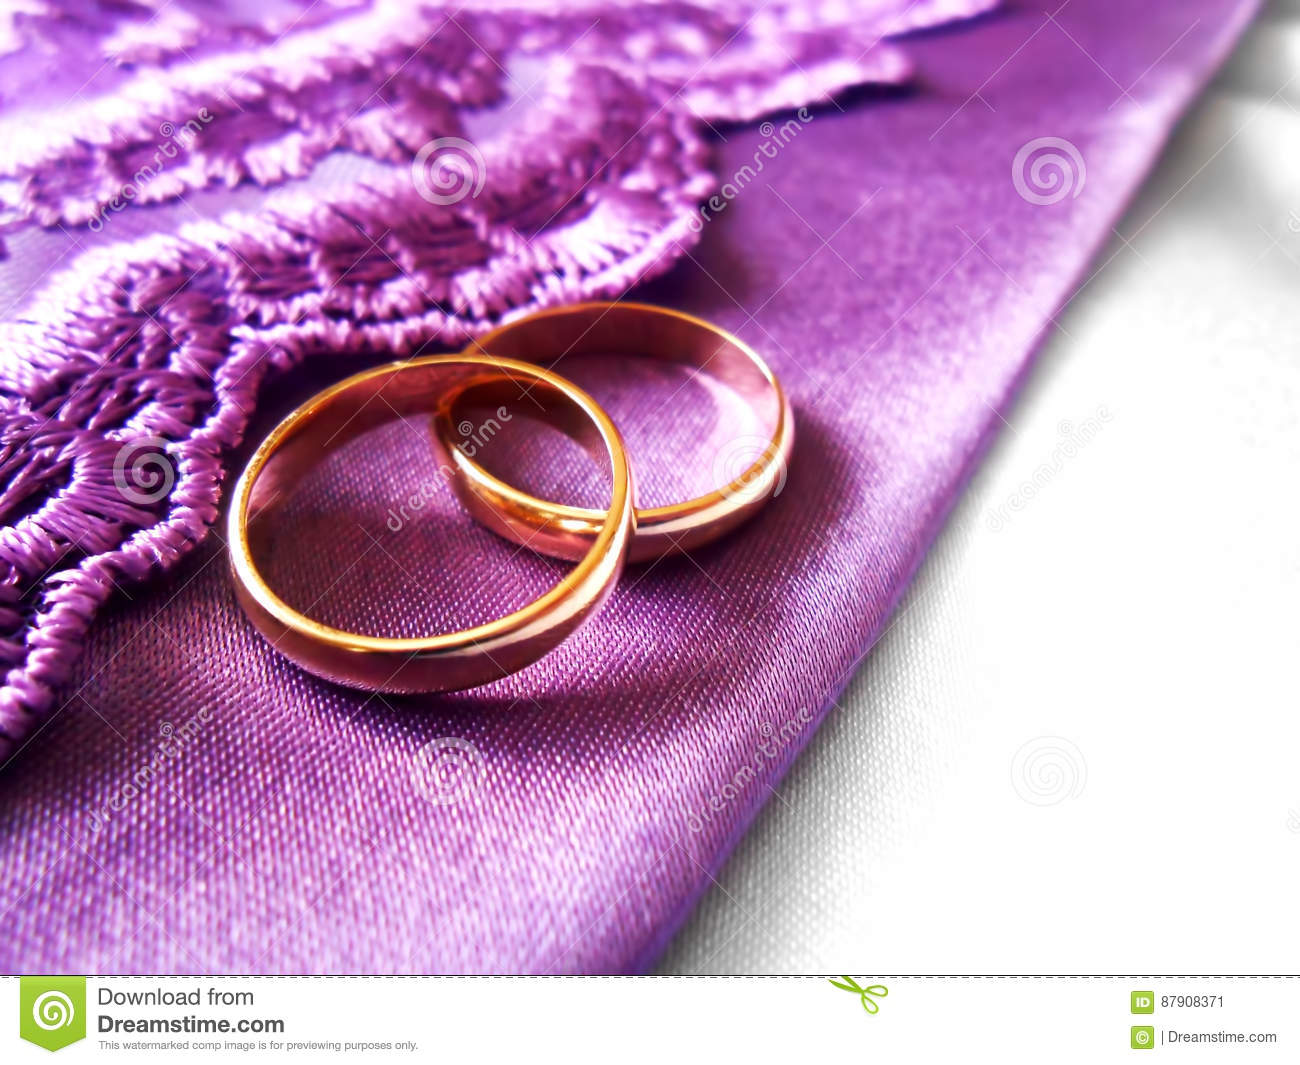 Wedding Gold Rings On Purple And White Fabric Stock Image - Image of ...